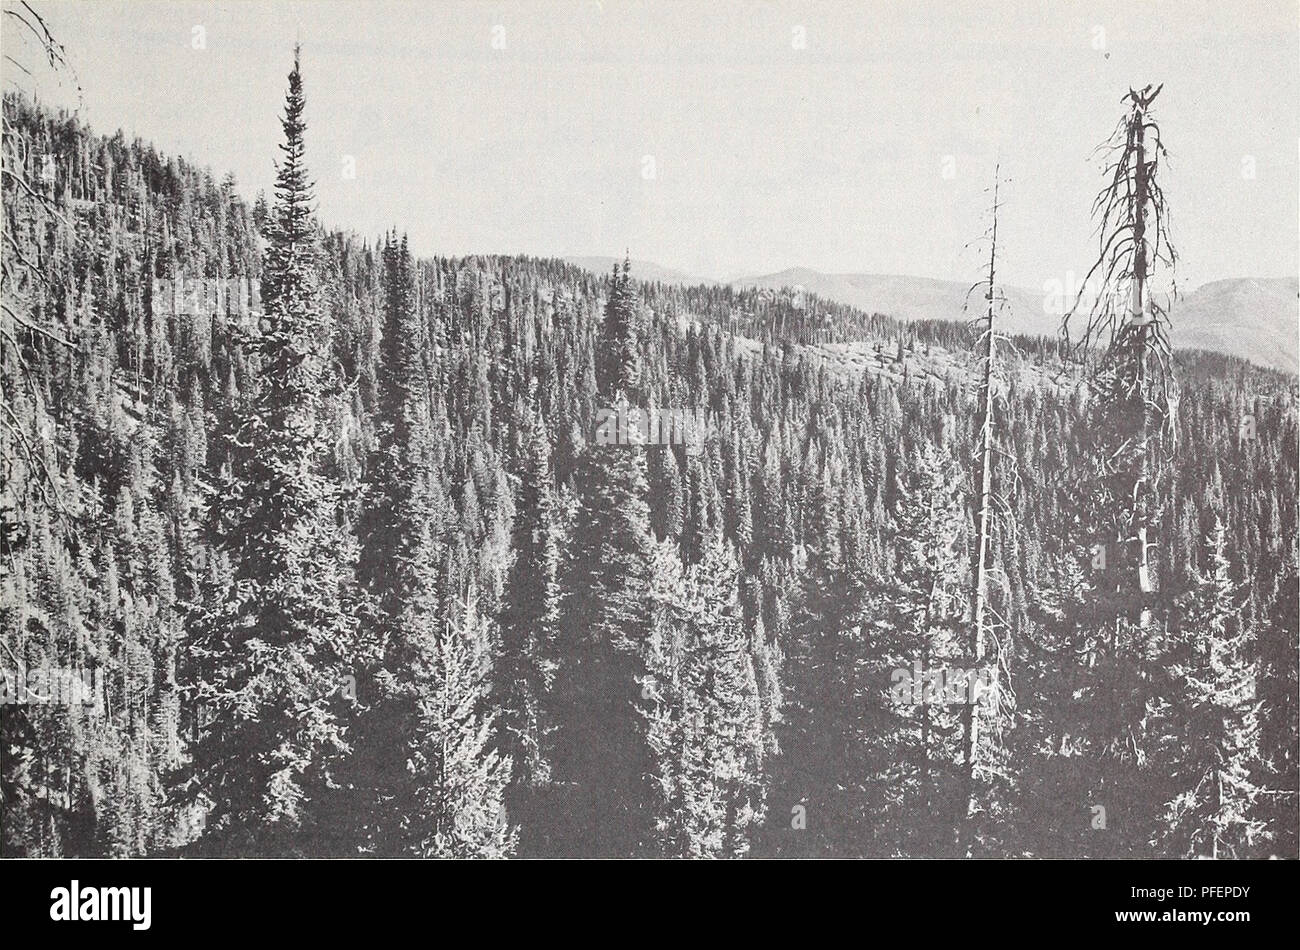 Some of florida's most important natural resources are its coastlines, seafood, minerals, citrus fruit, sugarcane, saw palmetto berries and forests. A Descriptive Analysis Of Montana S Forest Resources Forests And Forestry Montana Statistics Timber Montana Statistics Figure 6 Spruce Fir Forest On The Montana Idaho Border The Subalpine Zone Is The Highest And Forms The